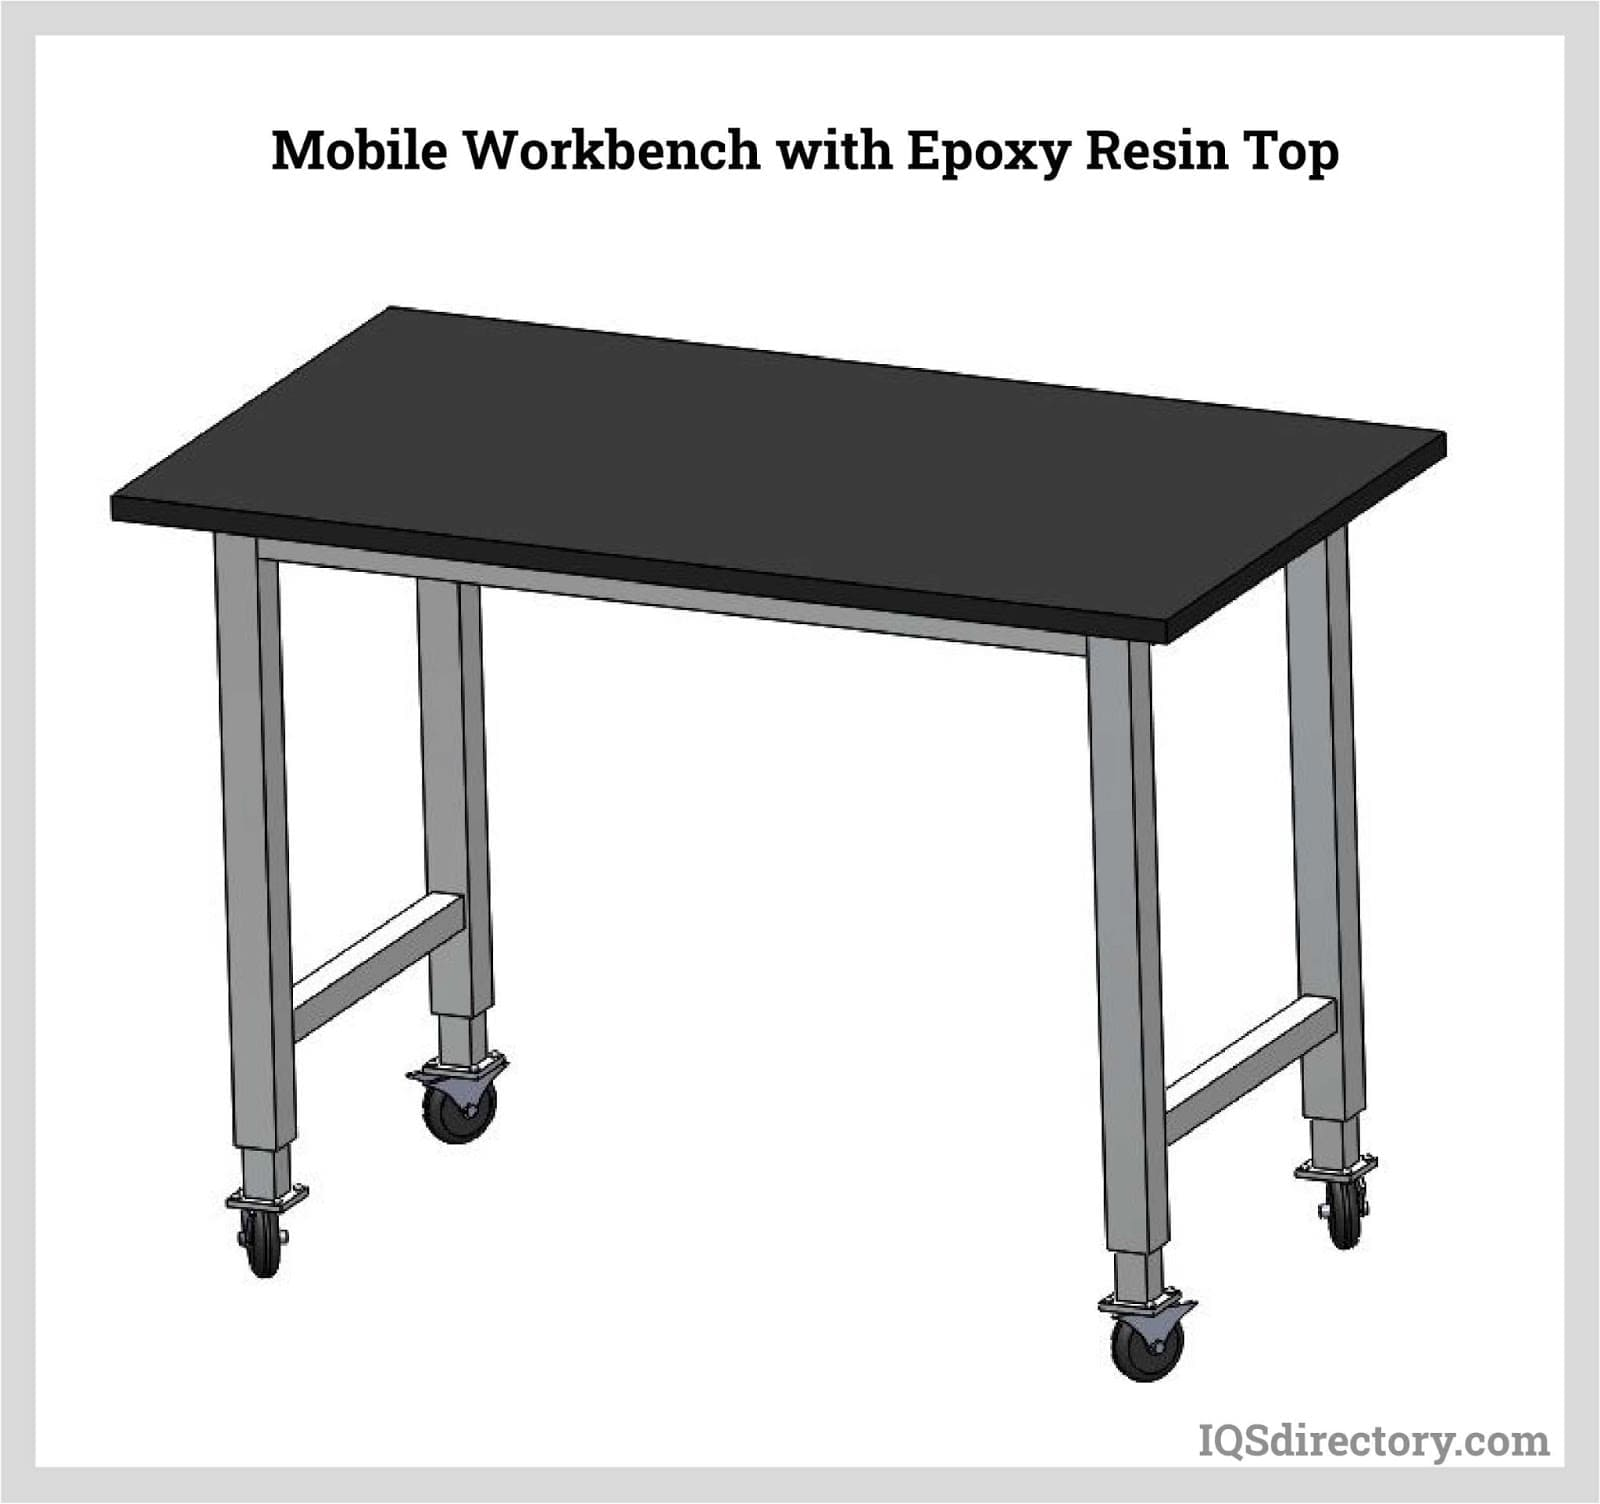 Mobile Workbench with Epoxy Resin Top